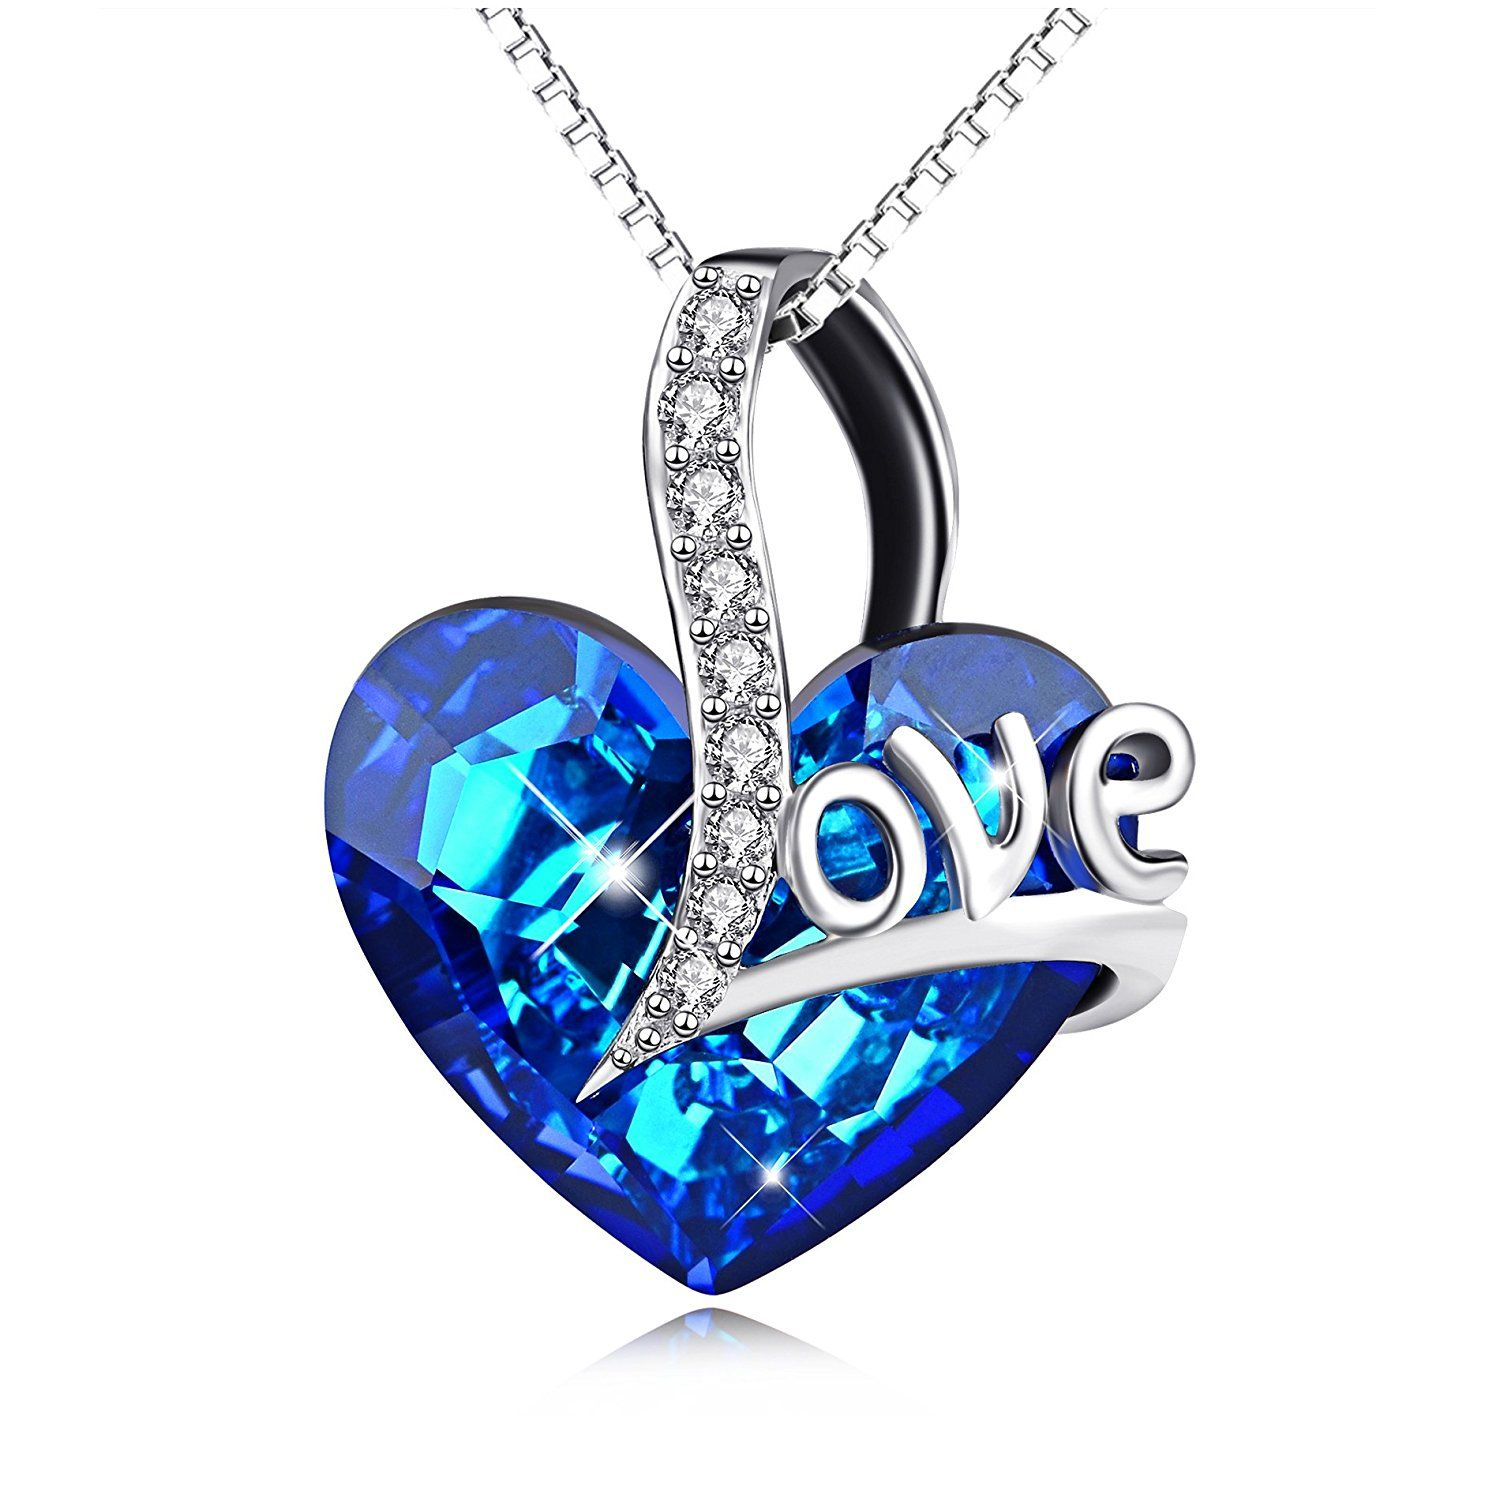 4216d05a847 Necklace for Love, Heart Pendant Necklace with Swarovski Crystals, Jewelry  for Women *** Check this awesome product by going to the link at the image.